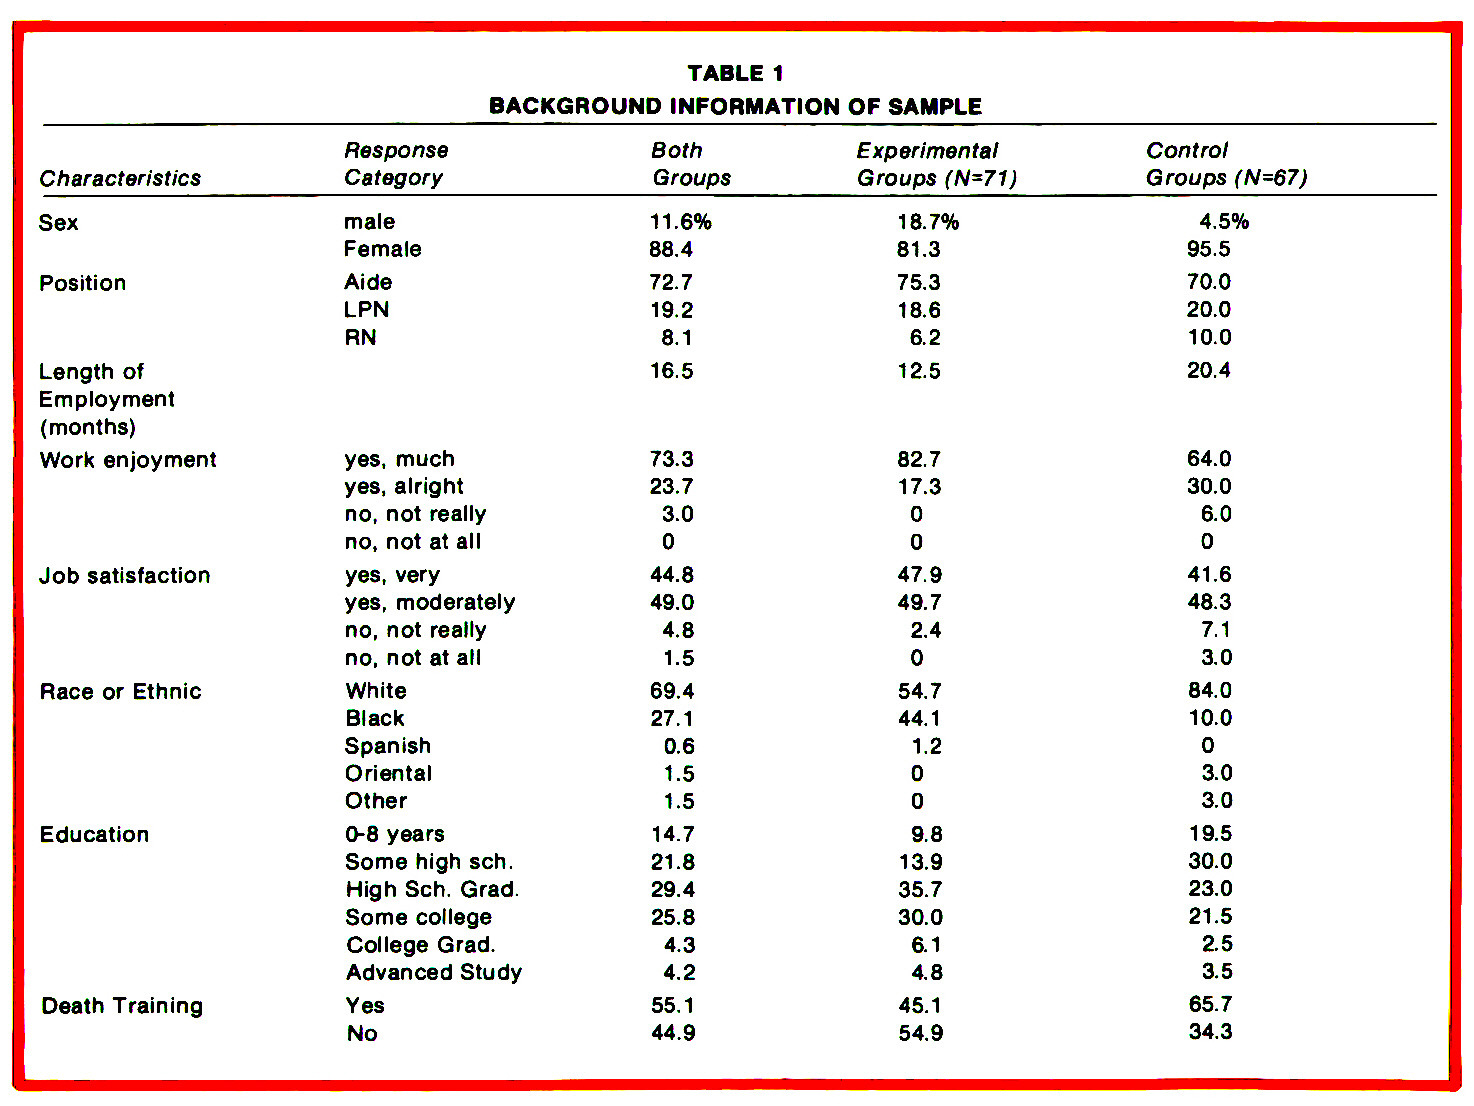 TABLE 1BACKGROUND INFORMATION OF SAMPLE